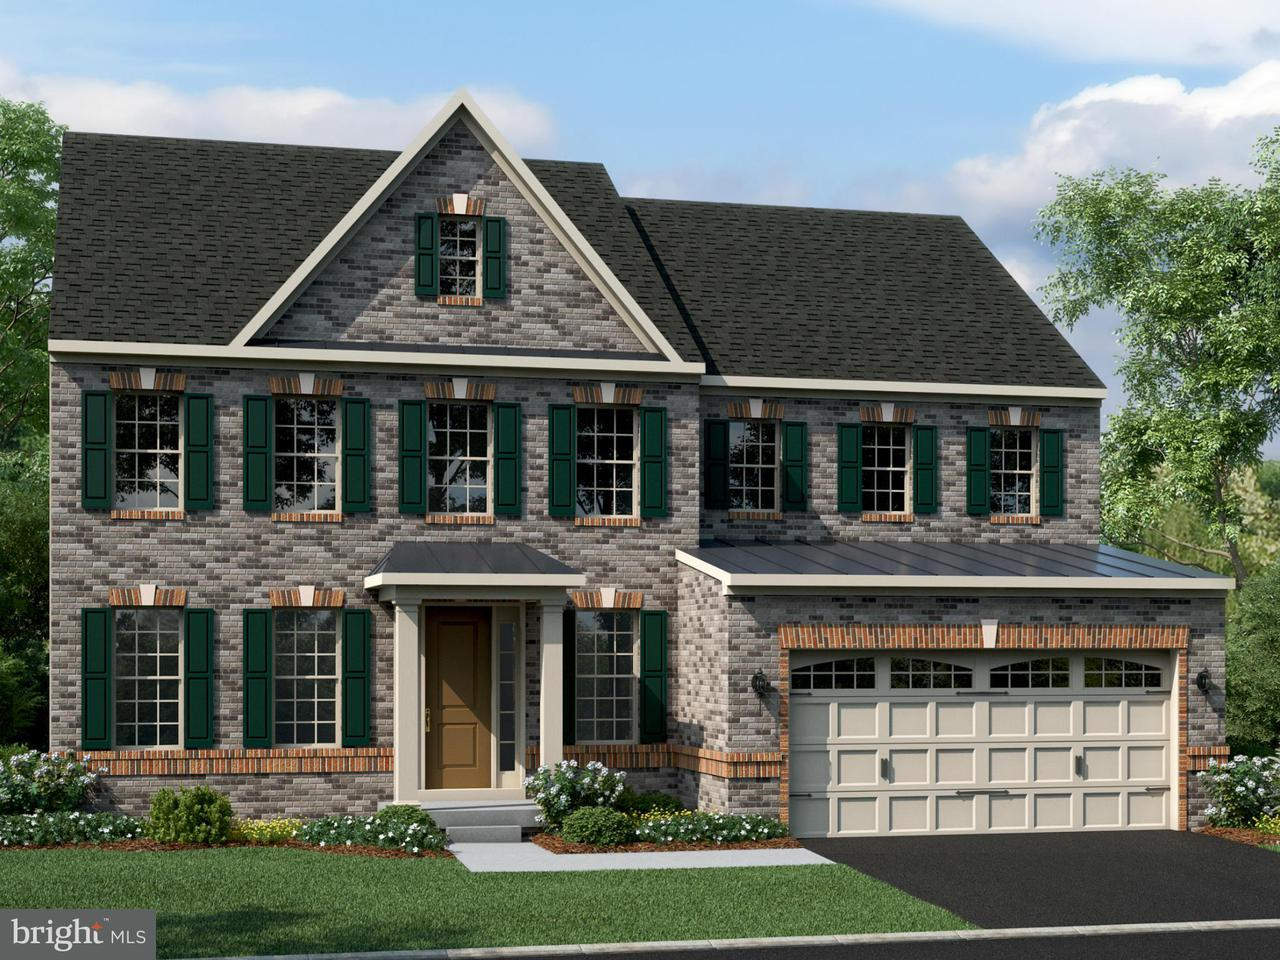 Single Family Home for Sale at 13602 GREENS DISCOVERY Court 13602 GREENS DISCOVERY Court Bowie, Maryland 20720 United States